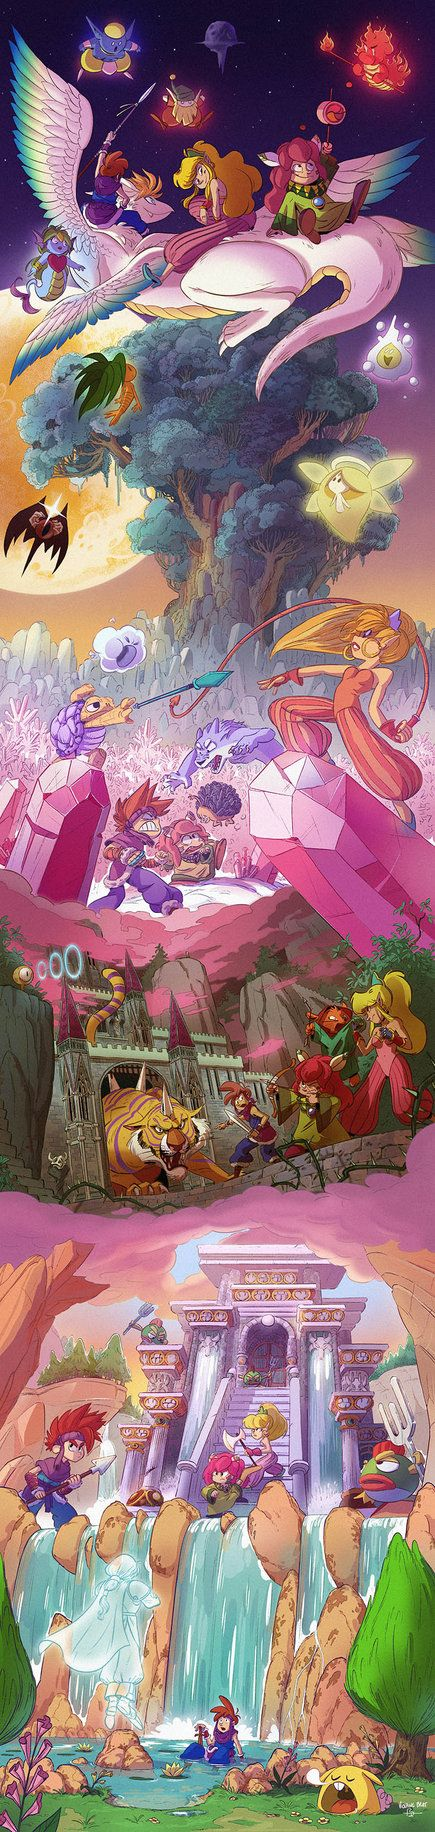 Secret of Mana fanart collaboration between Benoit Tranchet (benoittranchet-art.tumblr.com) and I (veesdumpingrounds.tumblr.com/) and I that we have been meaning to do since 3 years ago ! We&...